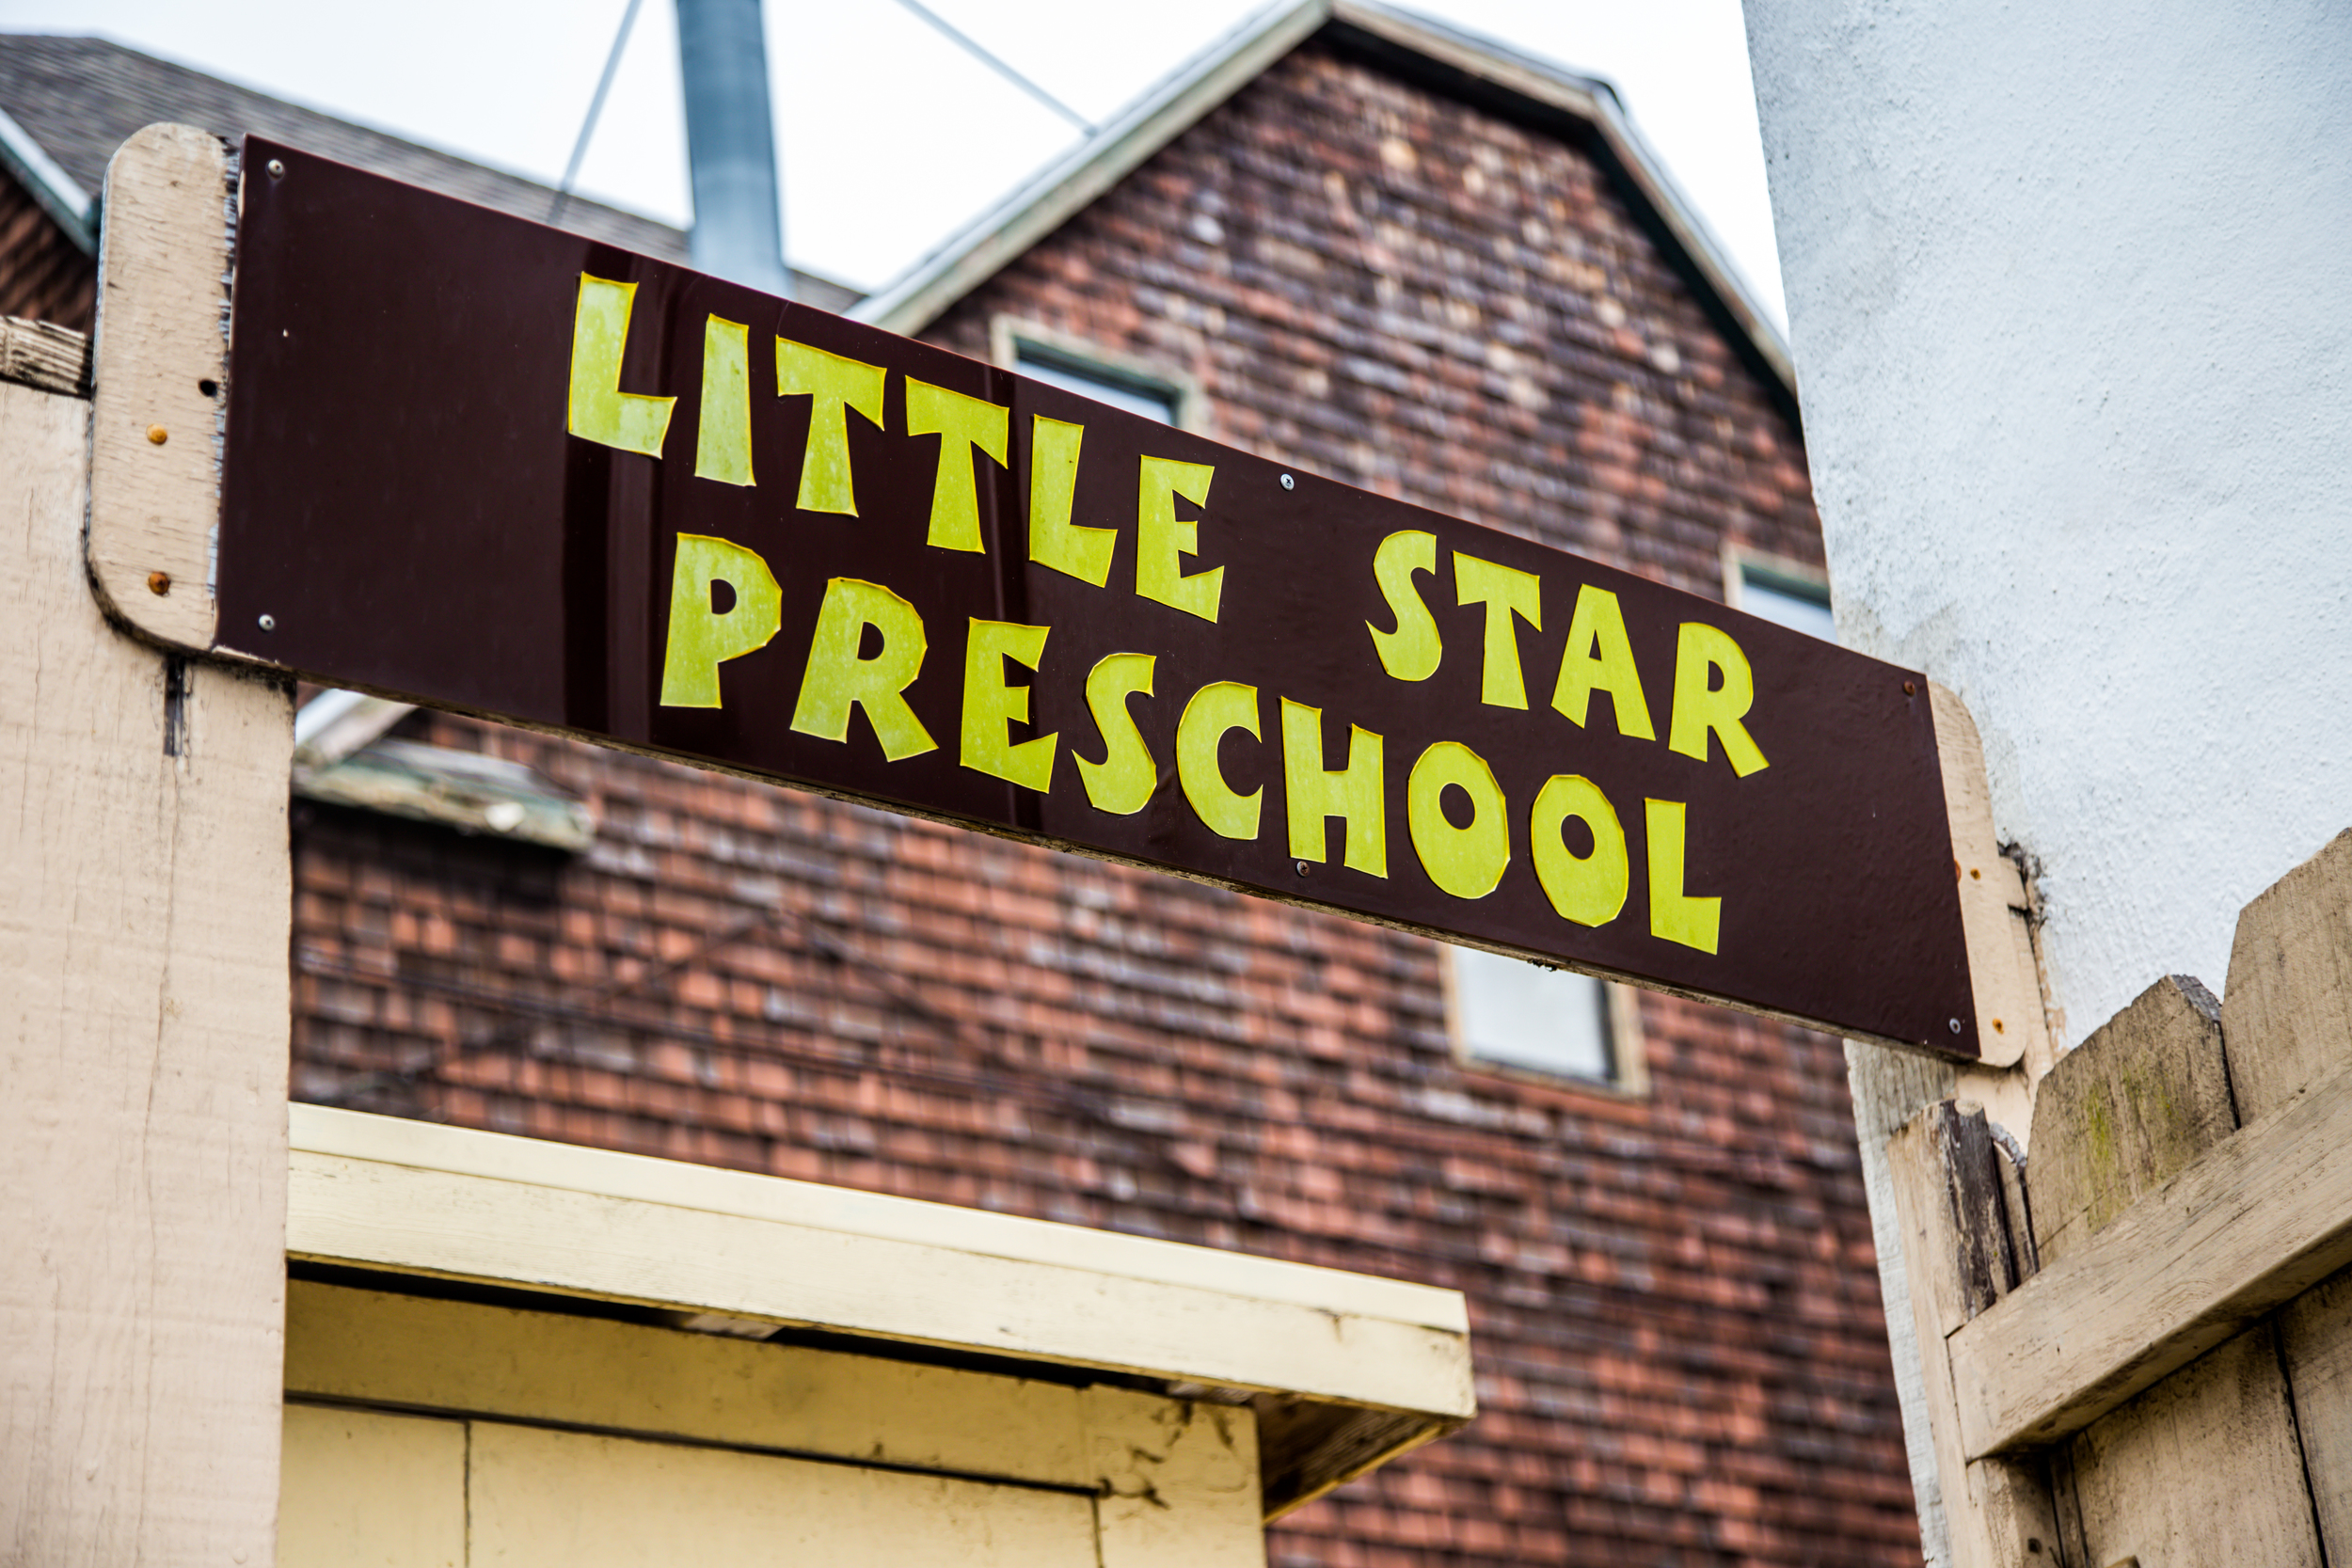 Little Star Preschool at 2540 Taraval Street is our original location and has been a locallandmark in San Francisco's Outer Sunset neighborhood since 1984.